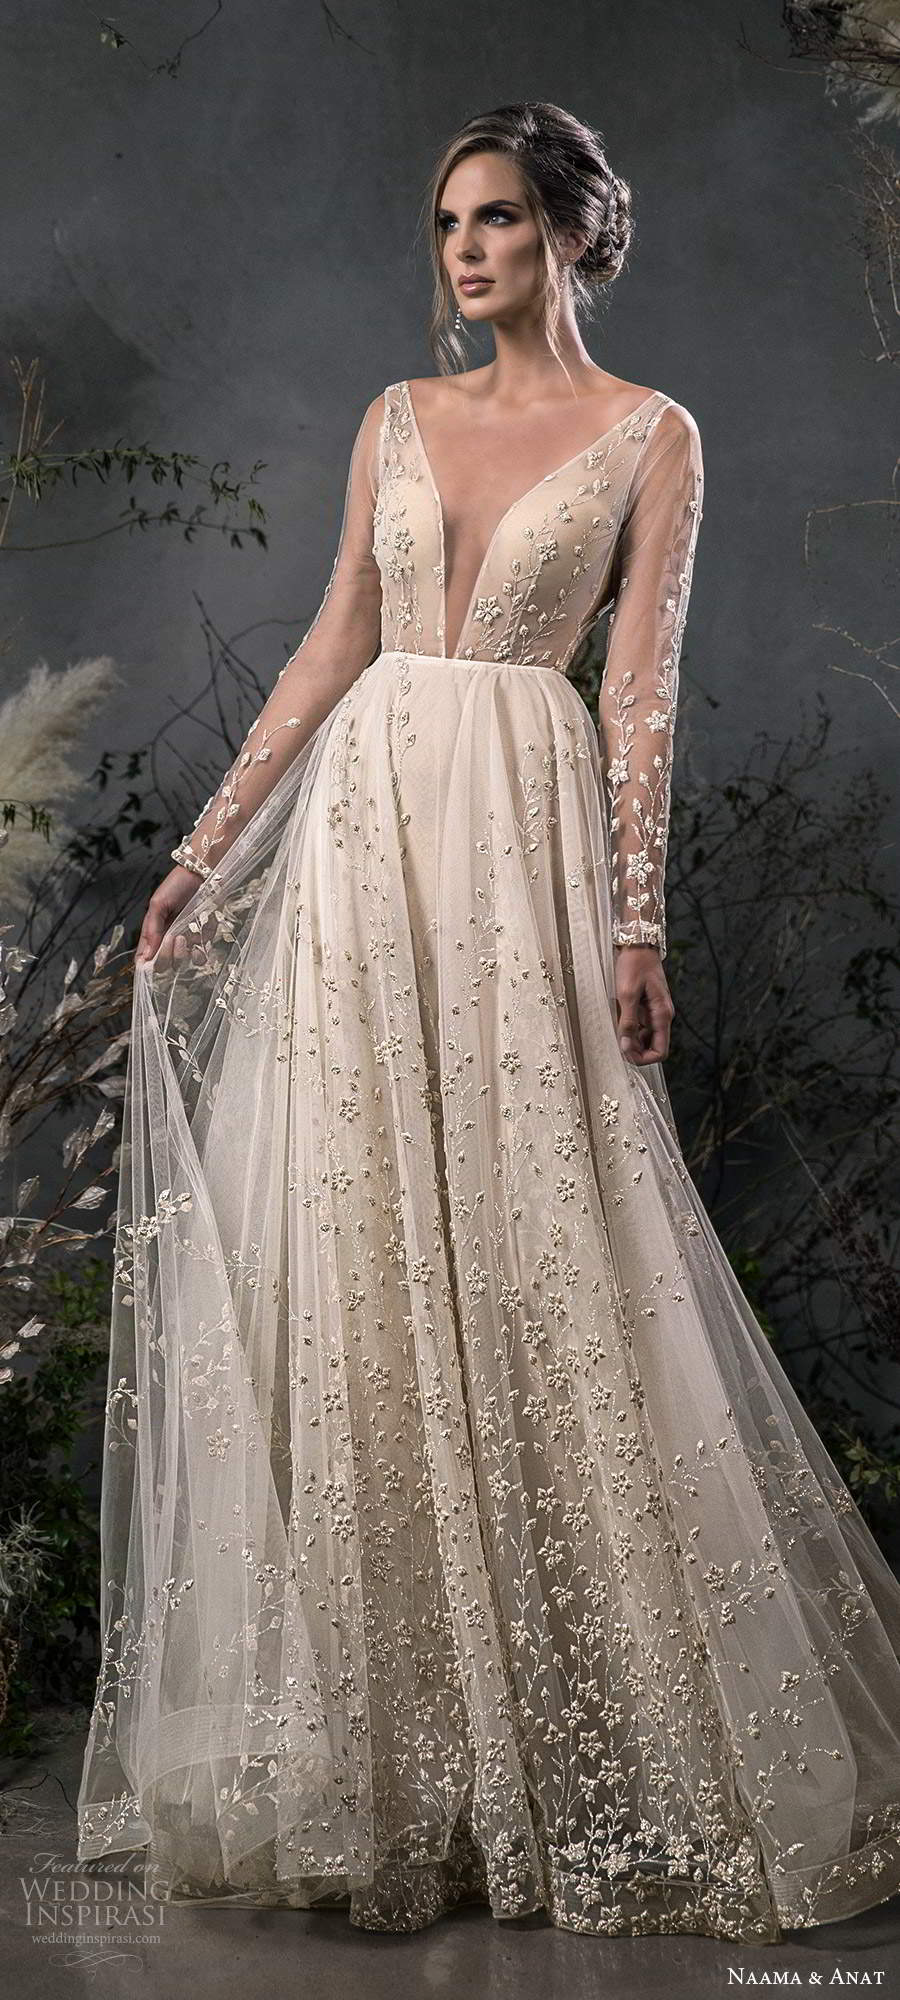 naama anat fall 2020 bridal illusion long sleeves plunging v neckline fully embellished a line ball gown wedding dress scoop back chapel train (6) lv